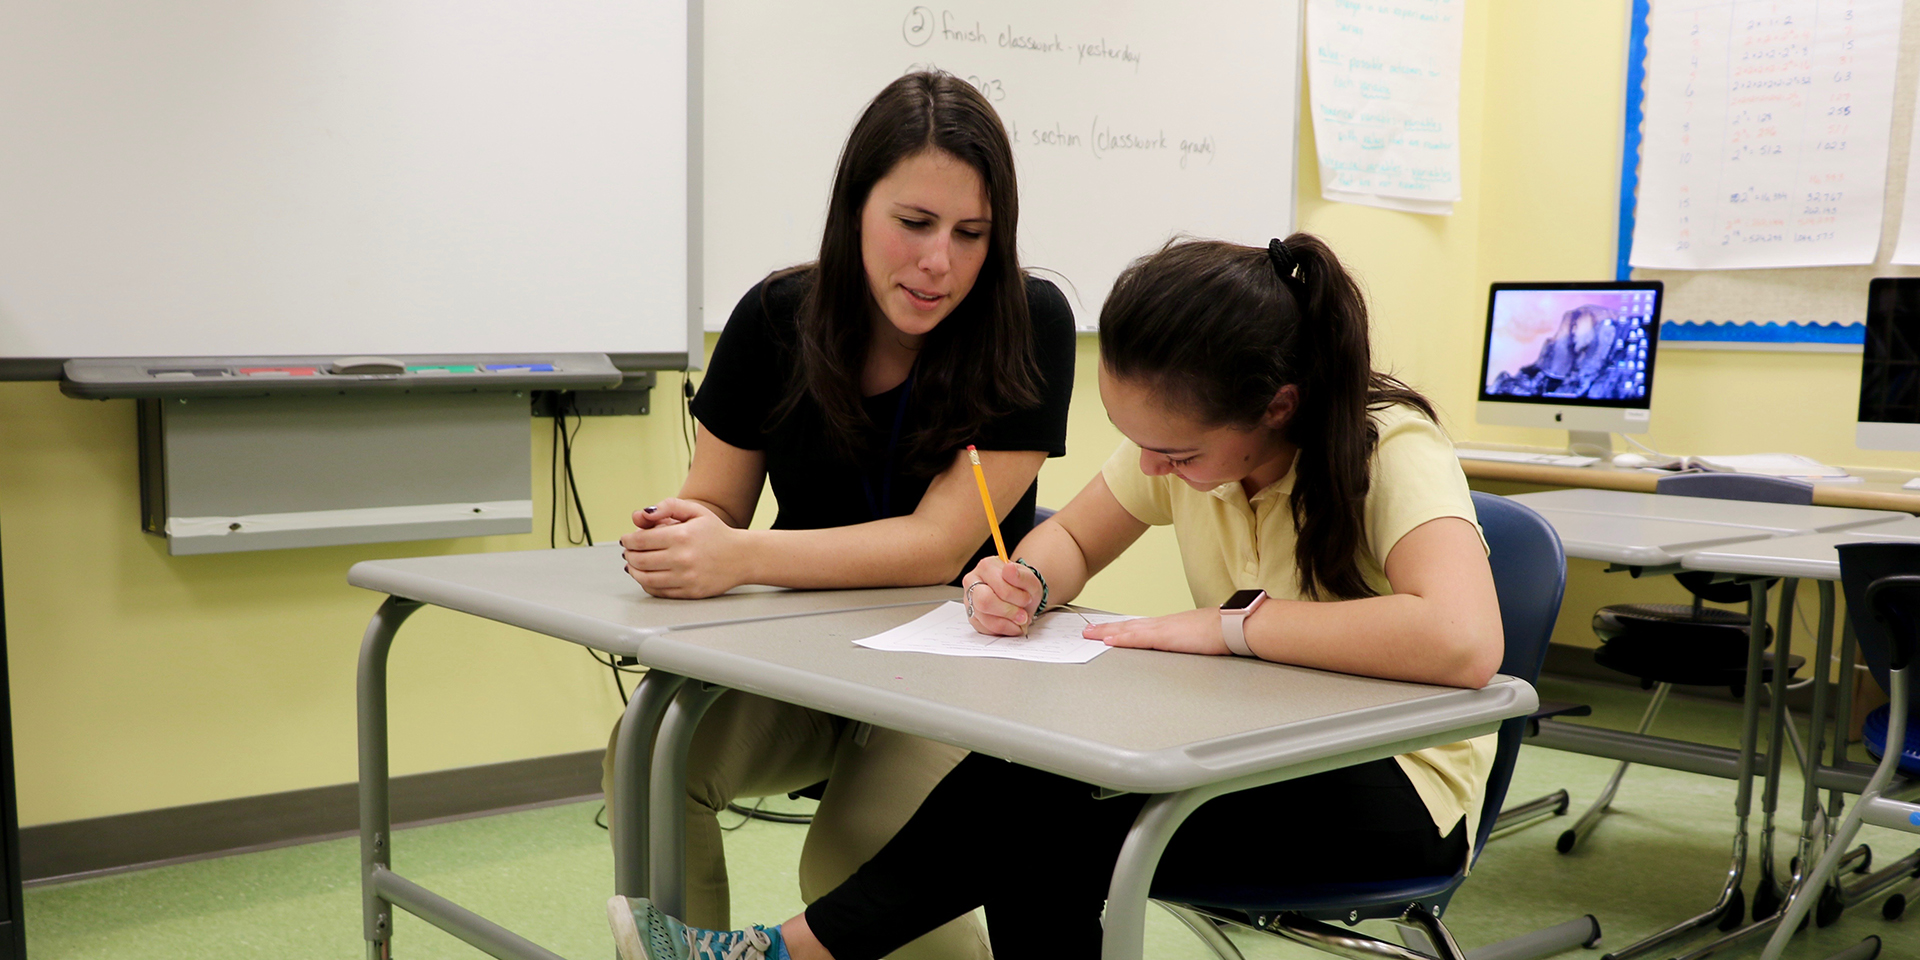 Teacher helps student with a writing assignment